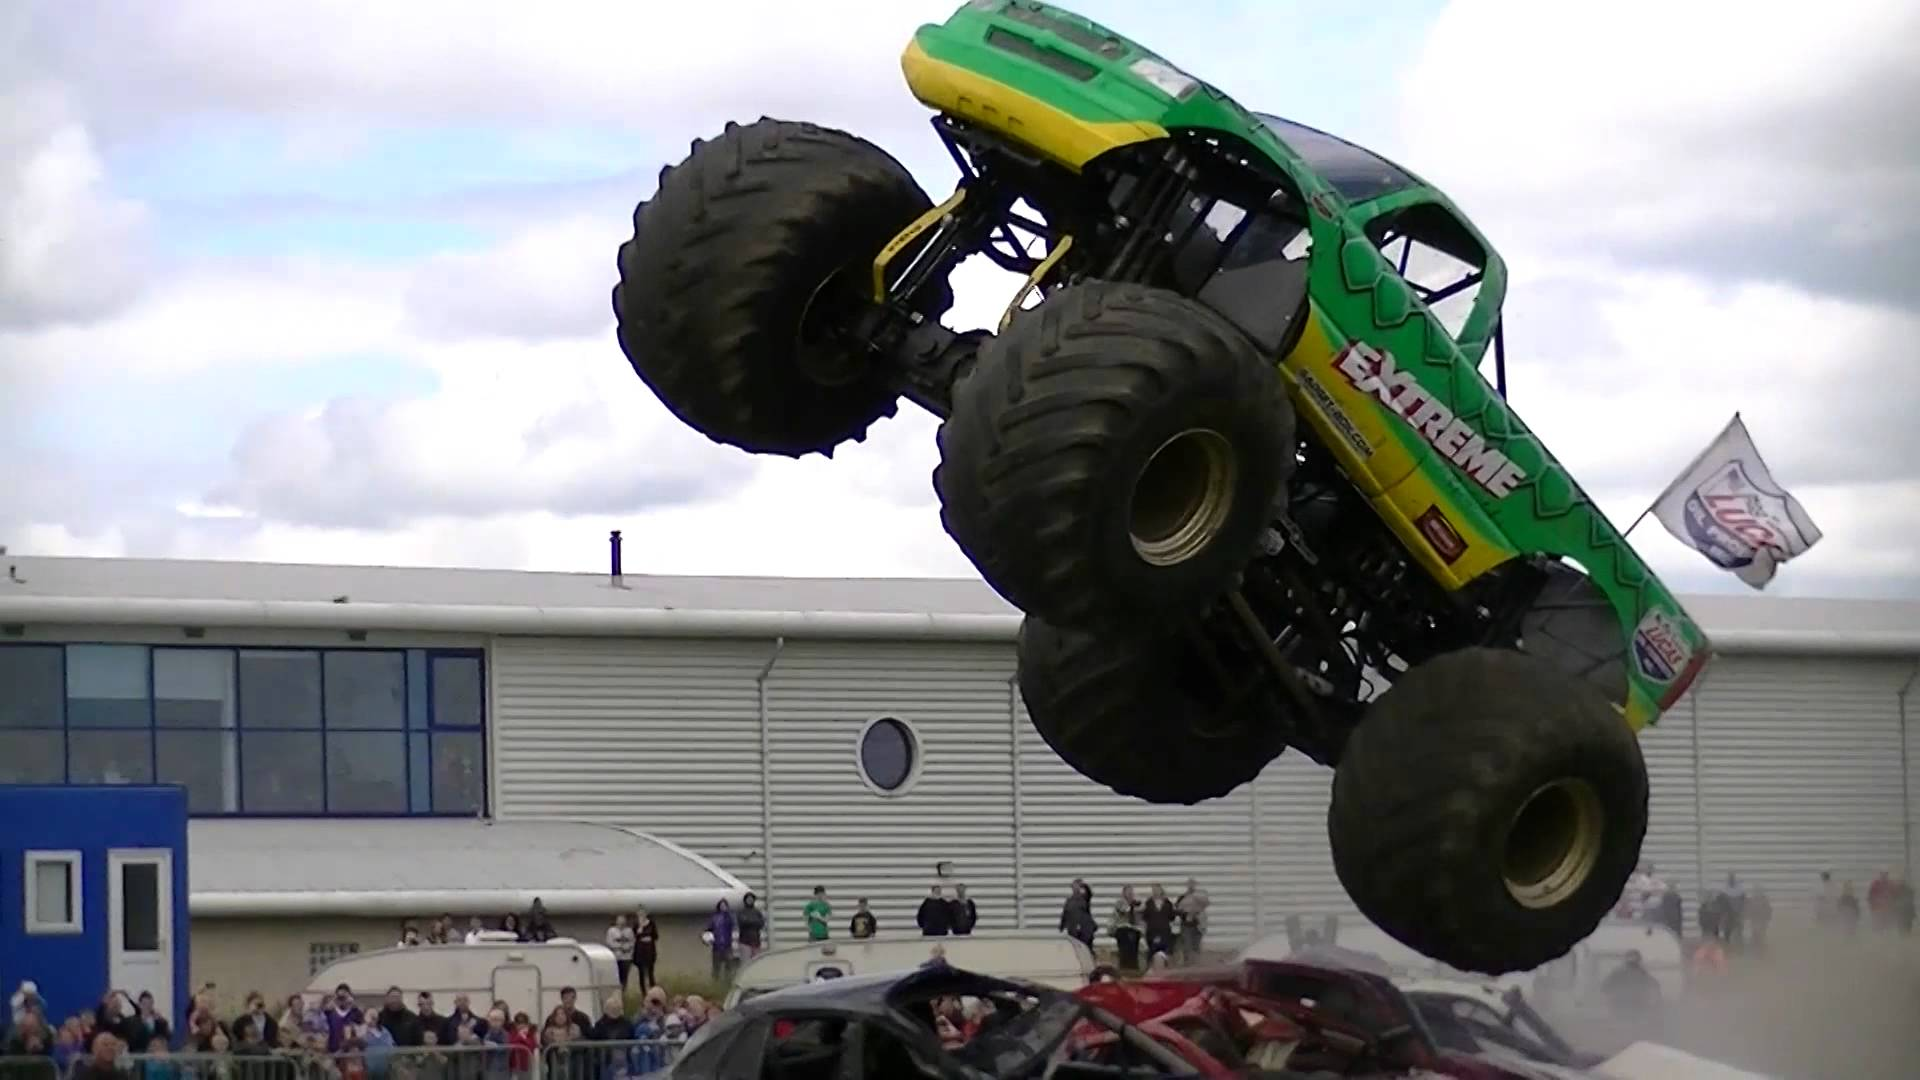 Extreme Monster Truck Second Jump in Realtime and Slow Motion at the ...